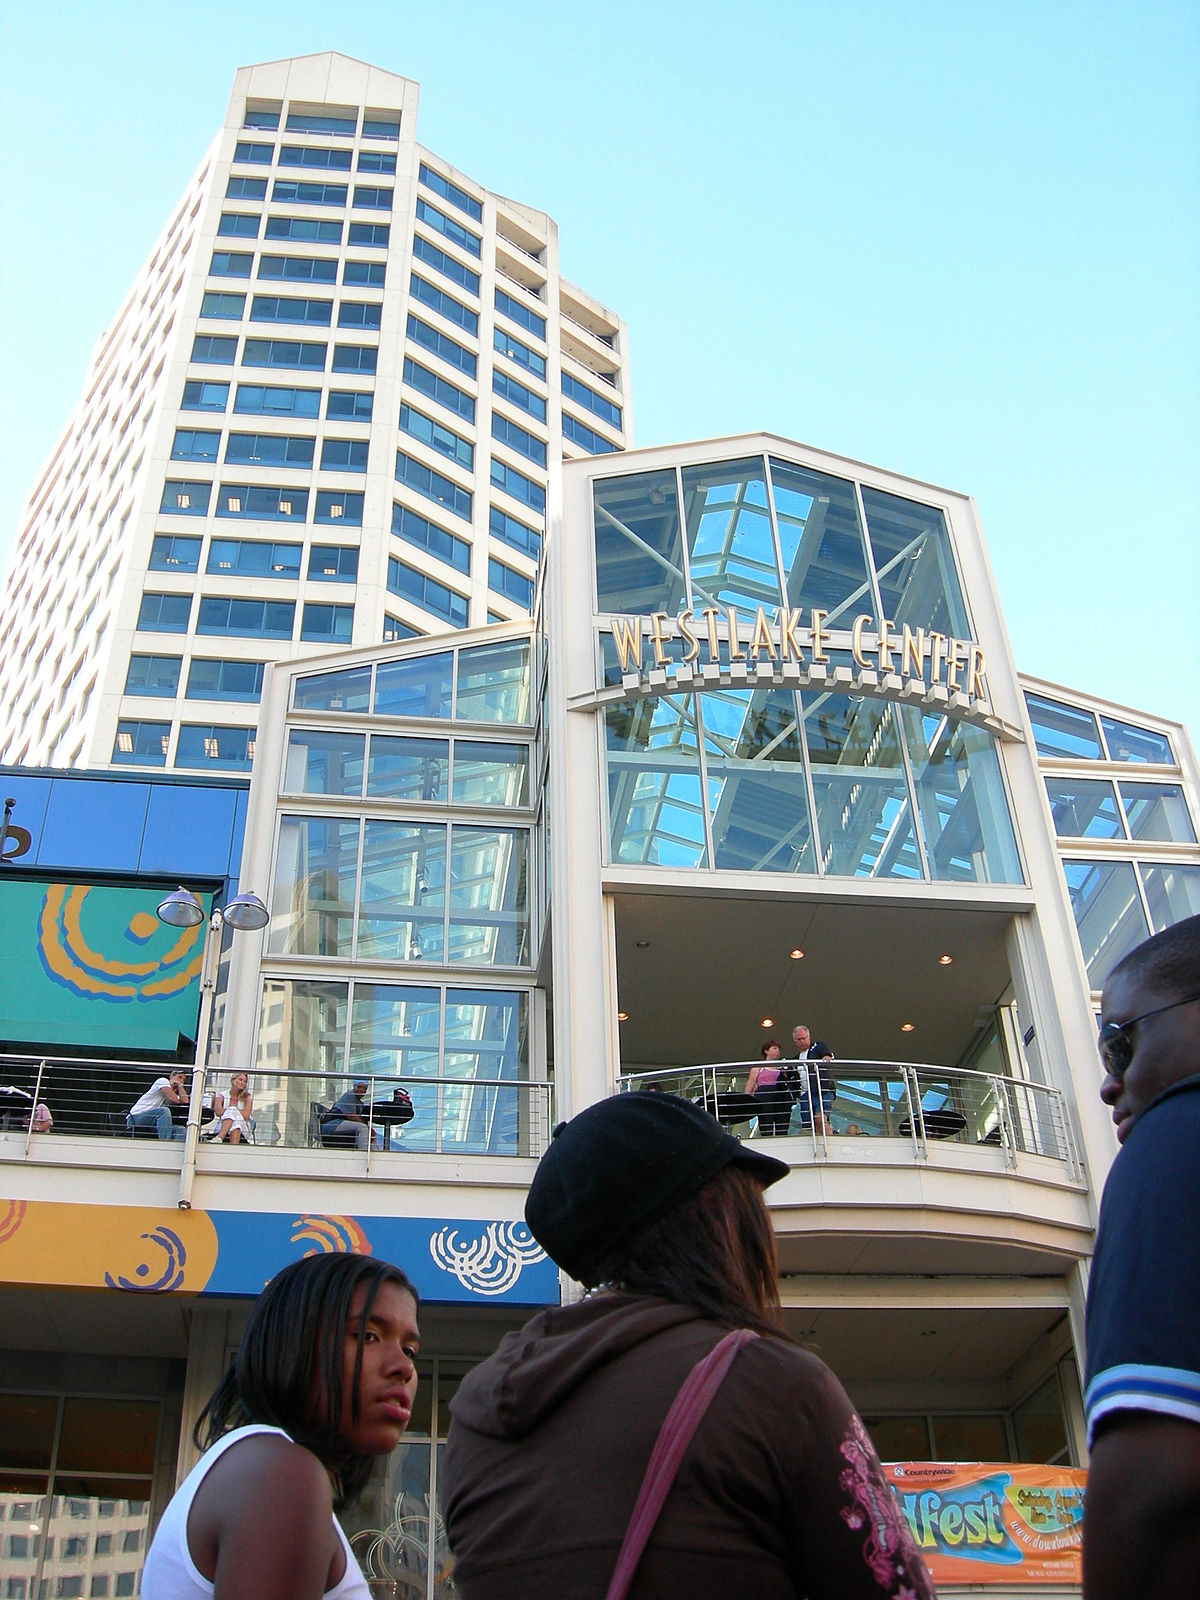 Stores For Floors >> Westlake Center - Wikipedia